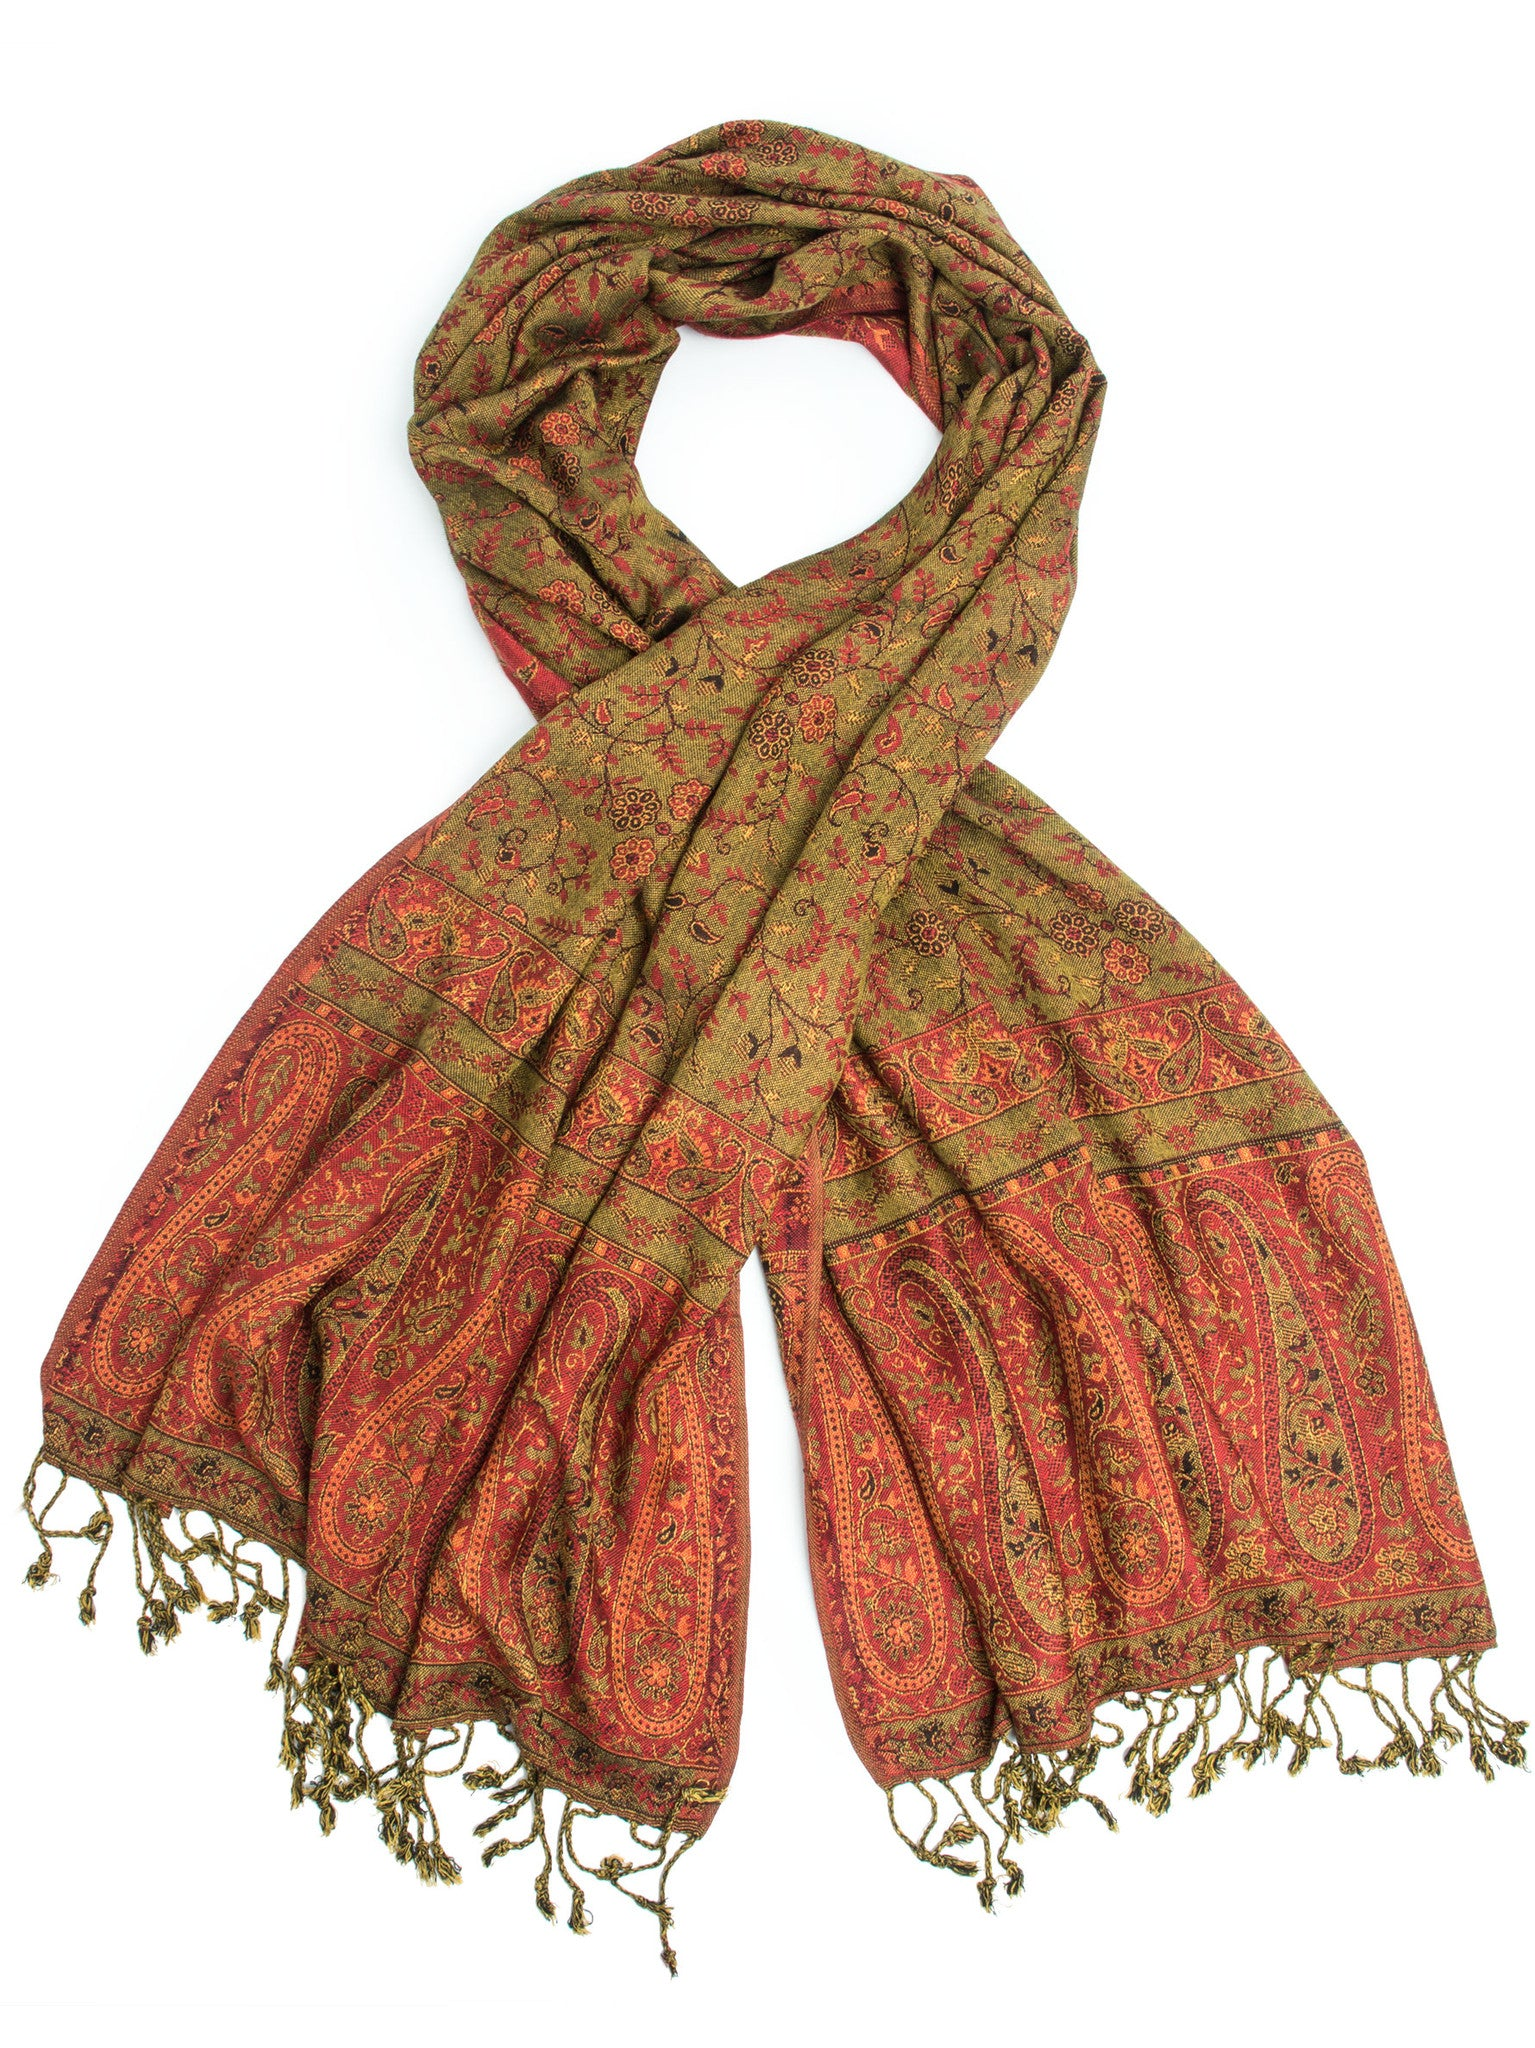 Scarves - Bhayana Reversible Cashmere Silk Pashmina Scarf, hand made in India -() Bohomonde  - 4